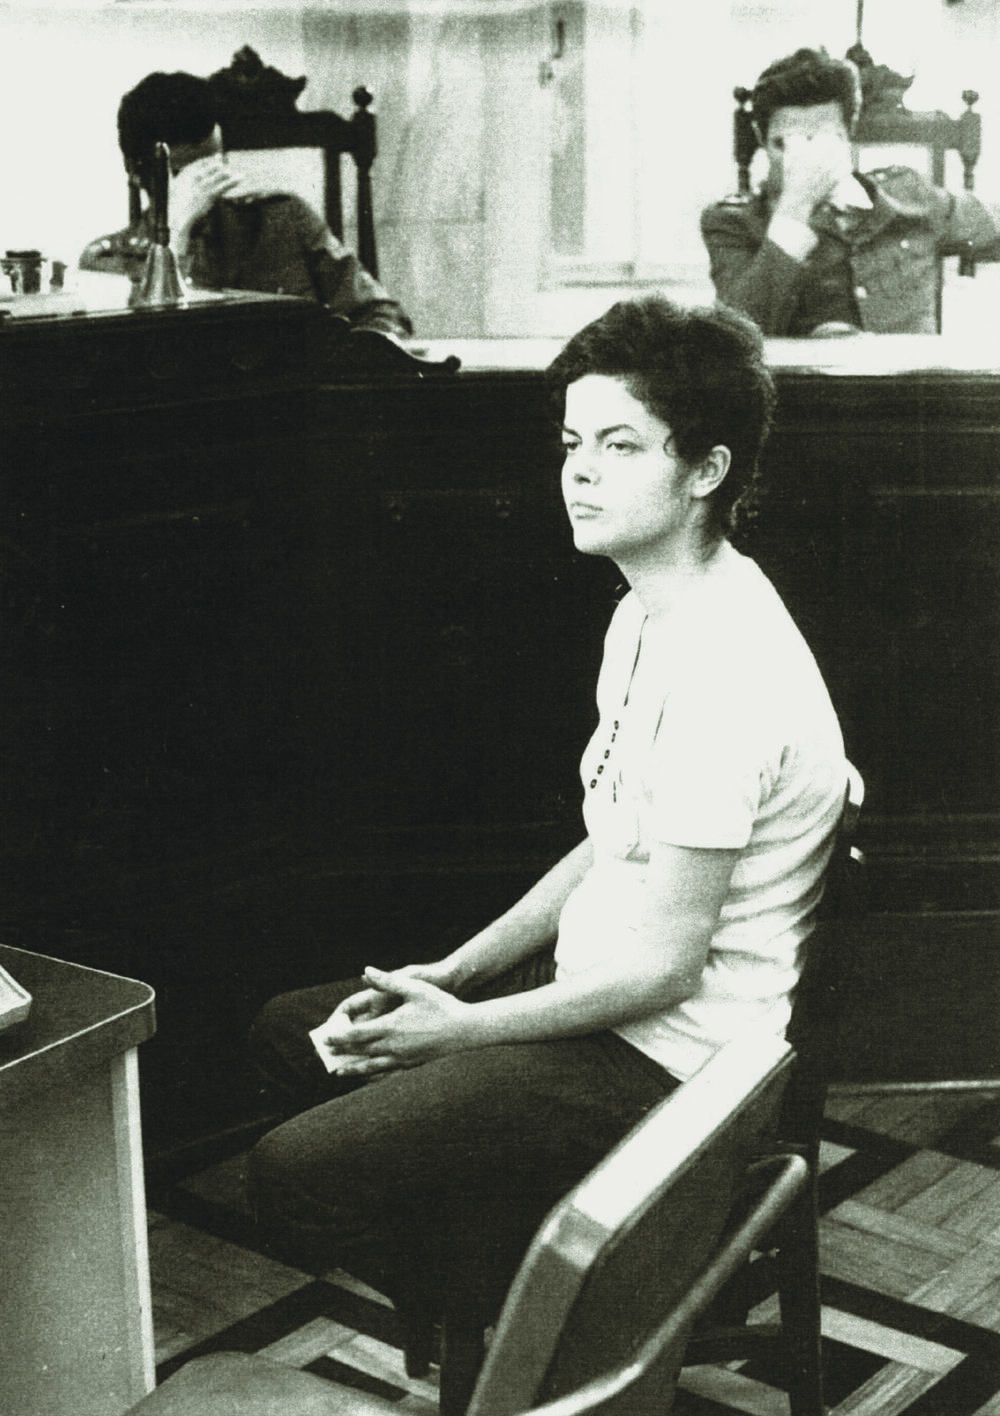 Dilma Rousseff on trial in 1970. As a militant activist, she was arrested and tortured. She became the first woman president of Brazil in 2011. She was impeached in 2016.